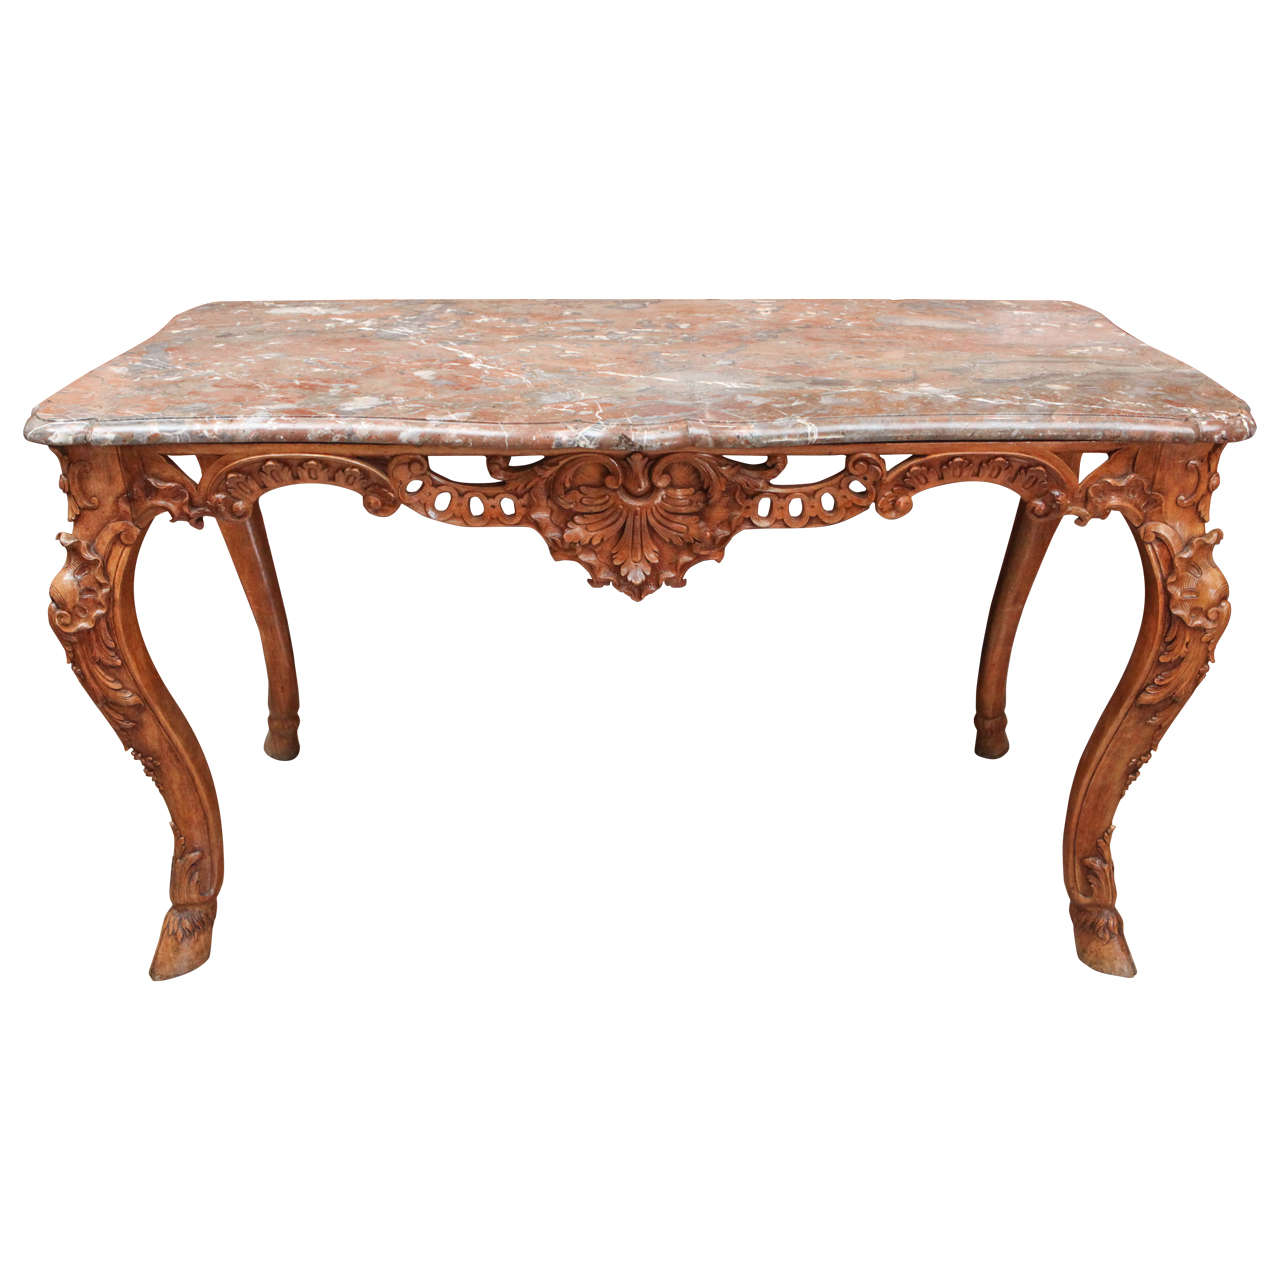 Late 18th Century French Carved Walnut Table with Original Marble Top For Sale